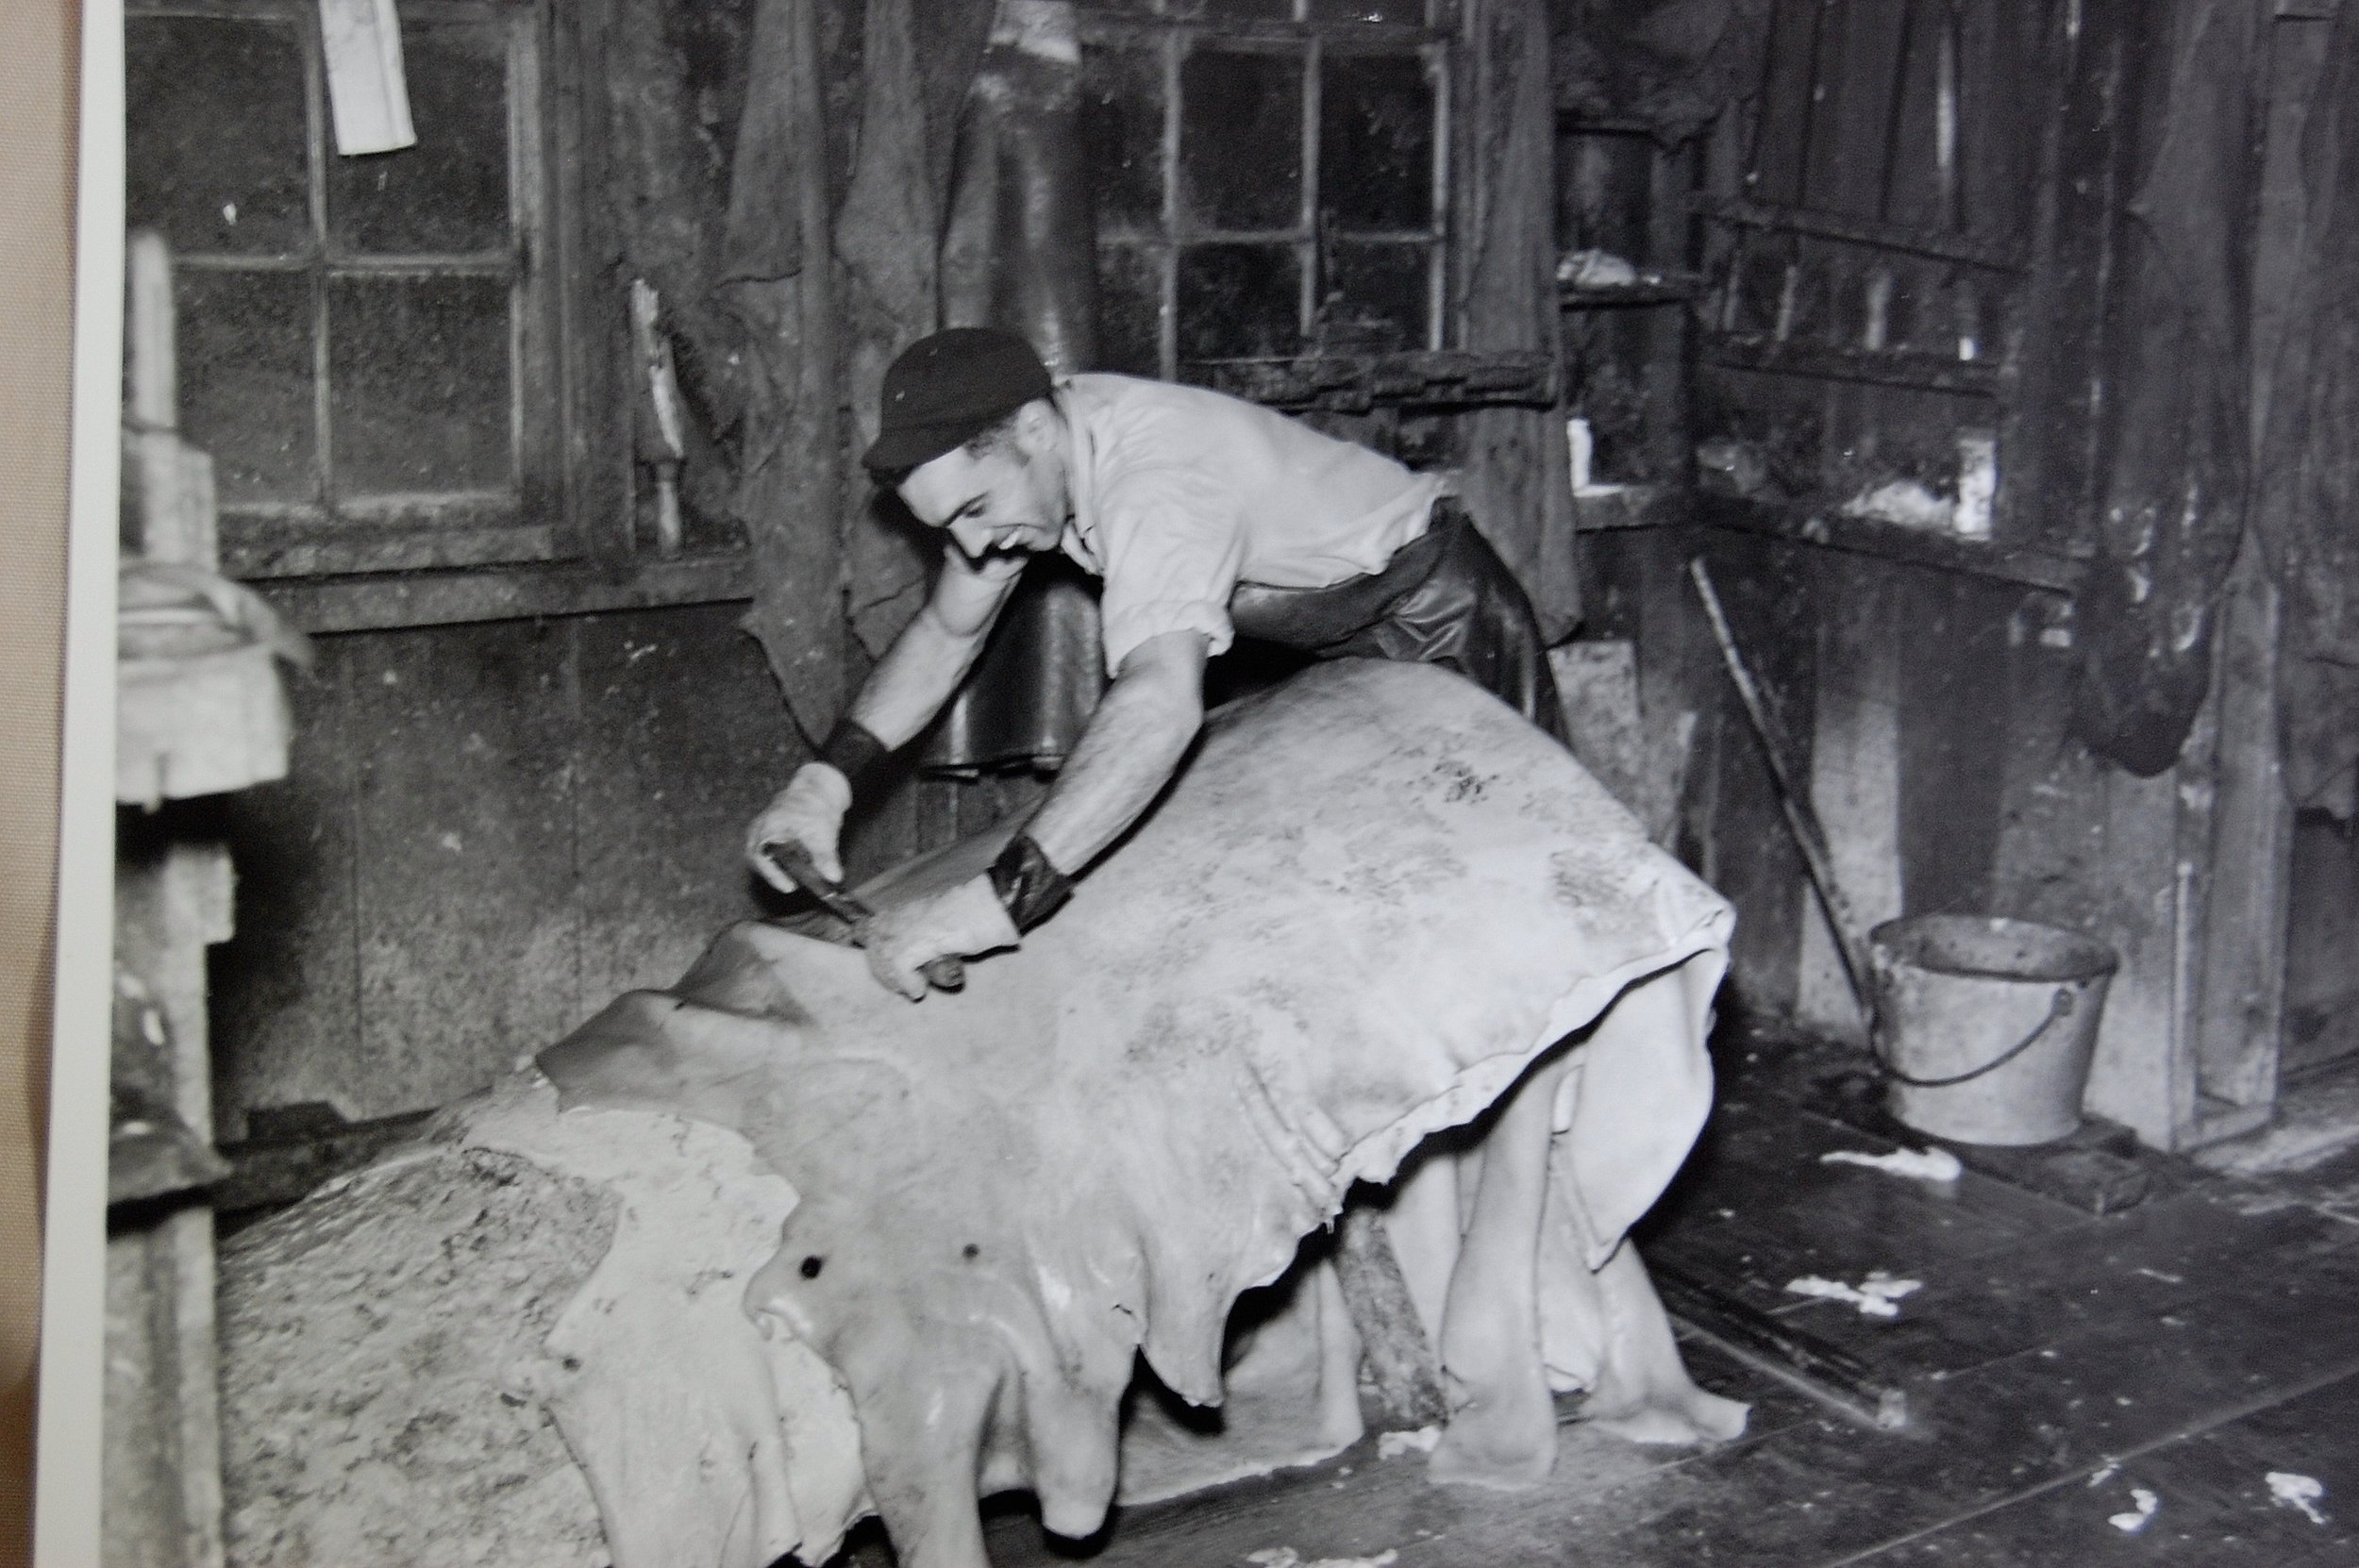 guy-scrapping-hides-1940s.jpg